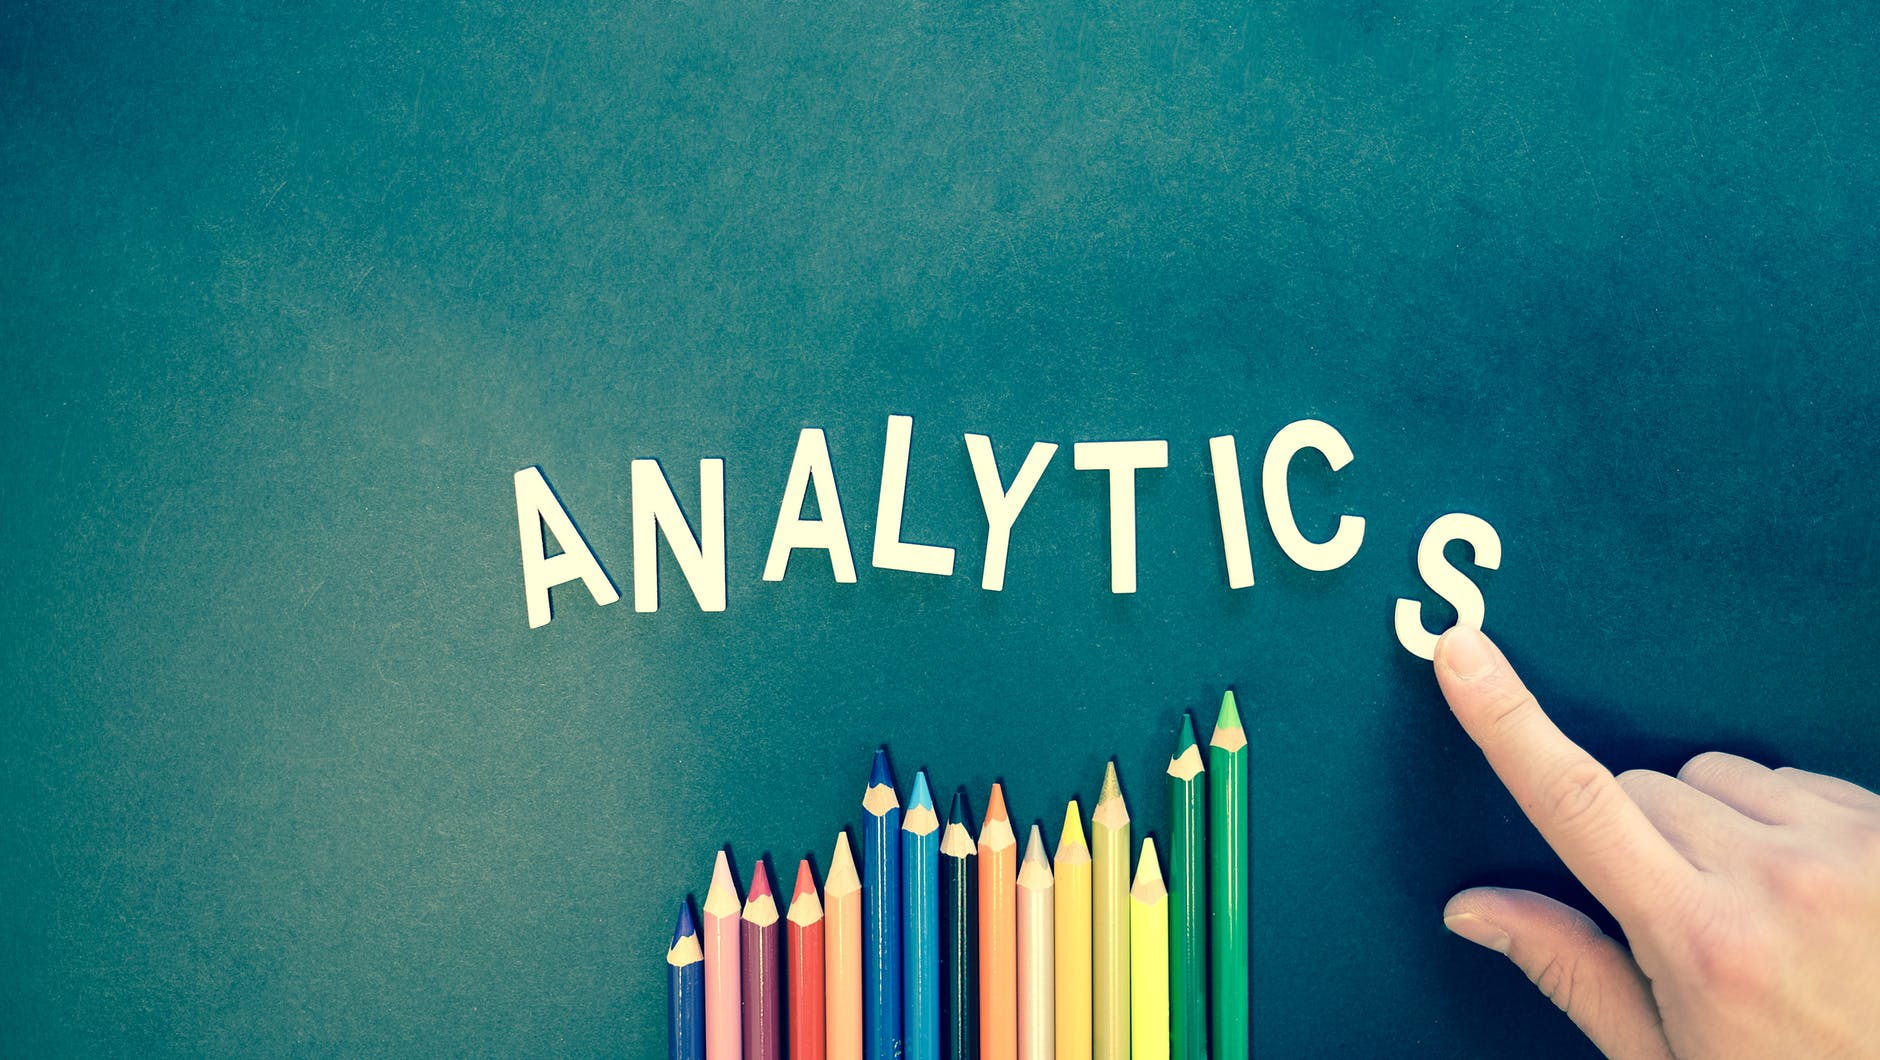 the word analytics on a background with an assortment of coloured pencils below it